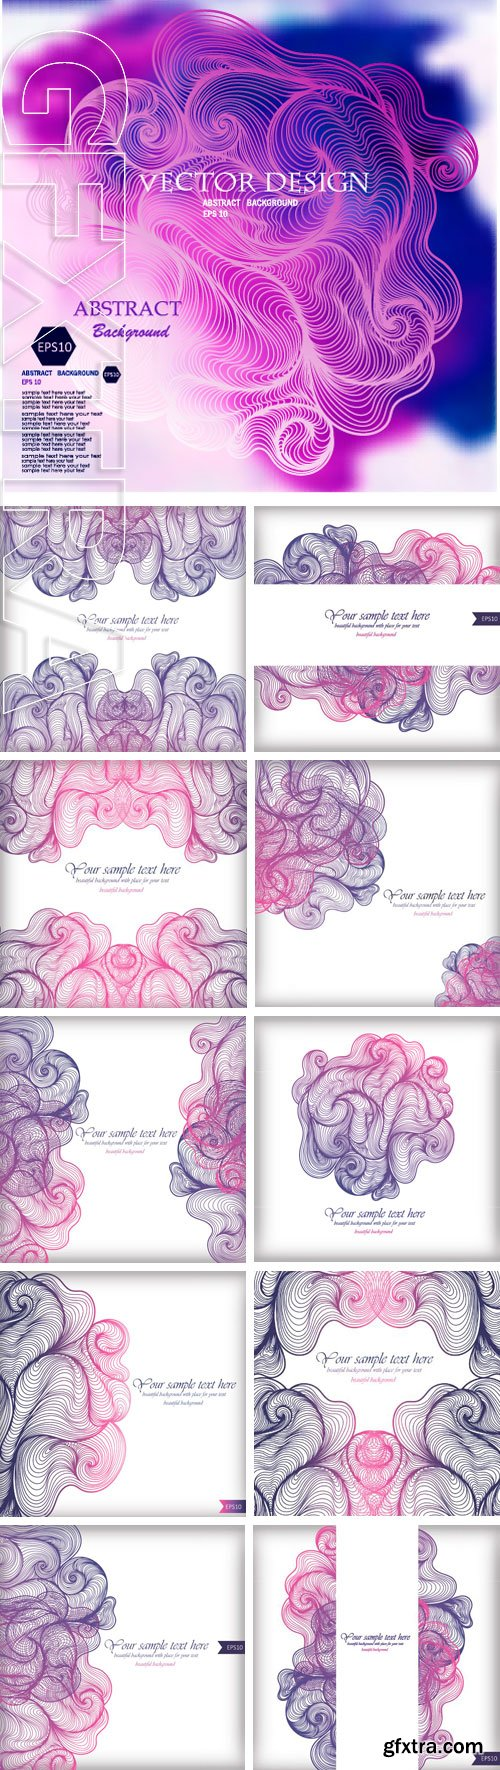 Stock Vectors - Vector abstract hand-drawn waves background with place for your text